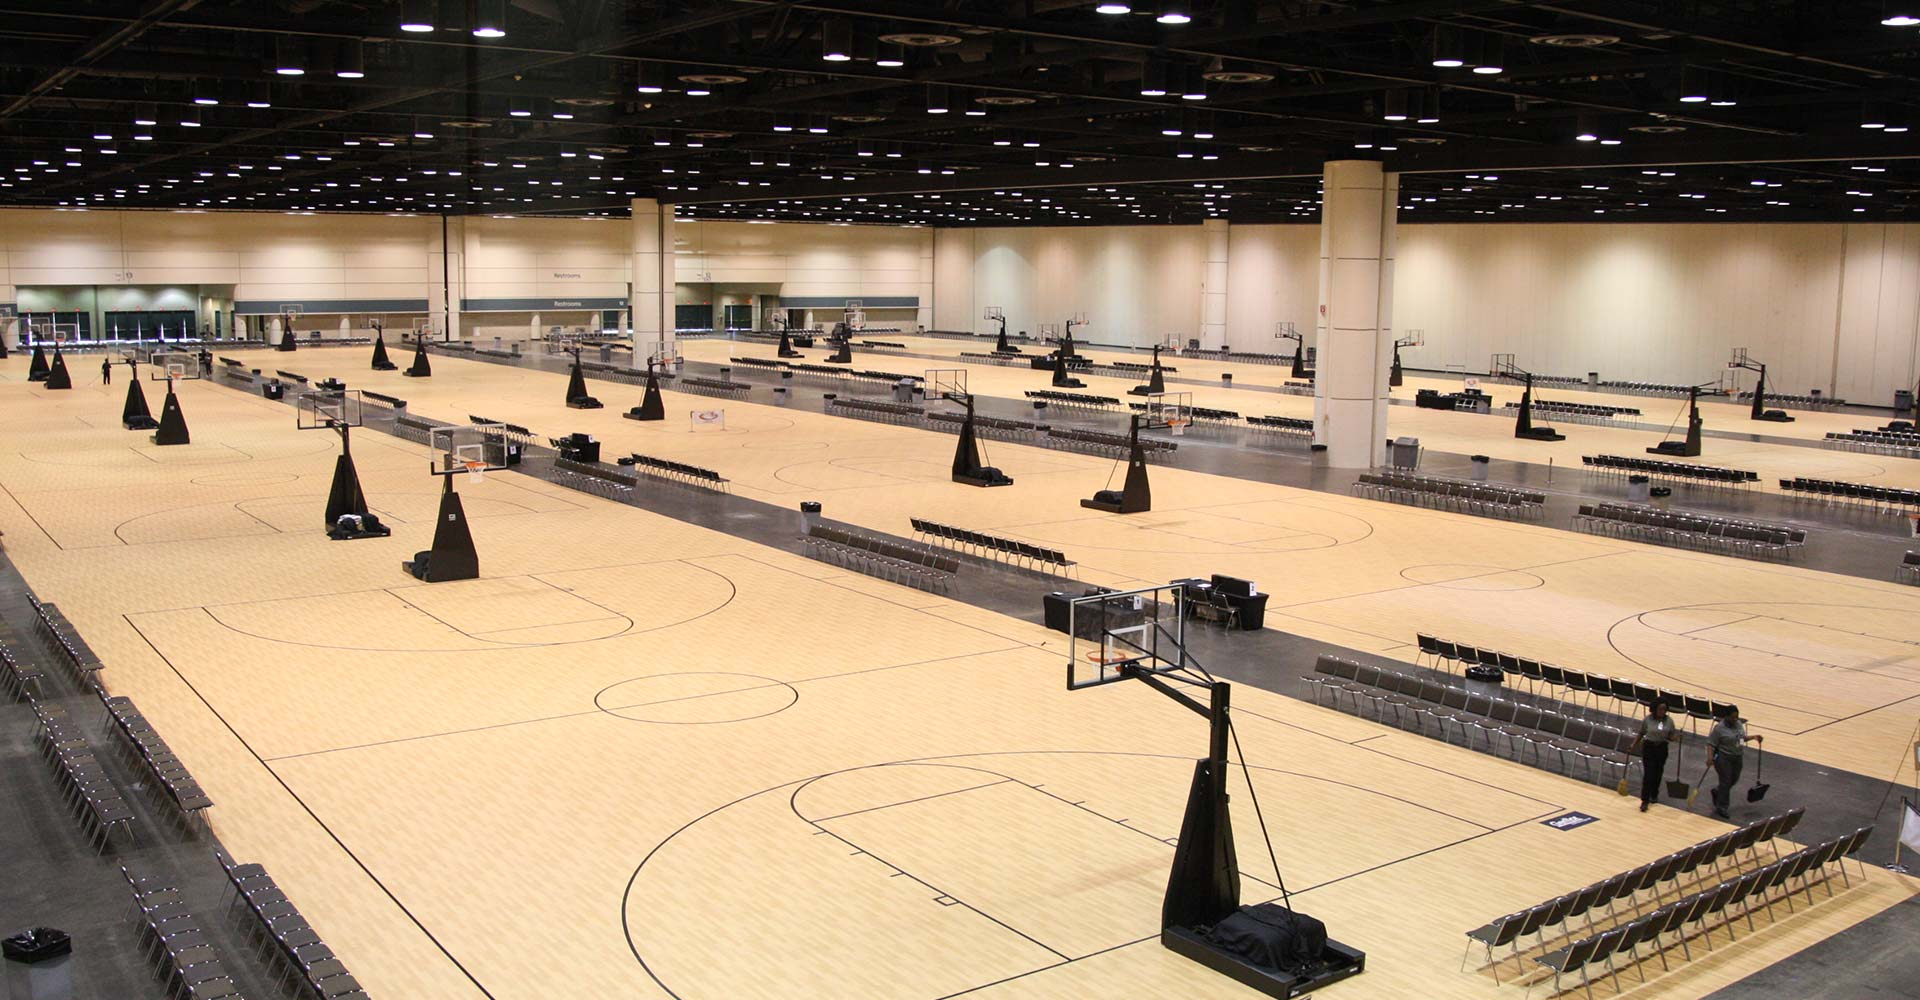 Orange County Convention Center Basketball Courts